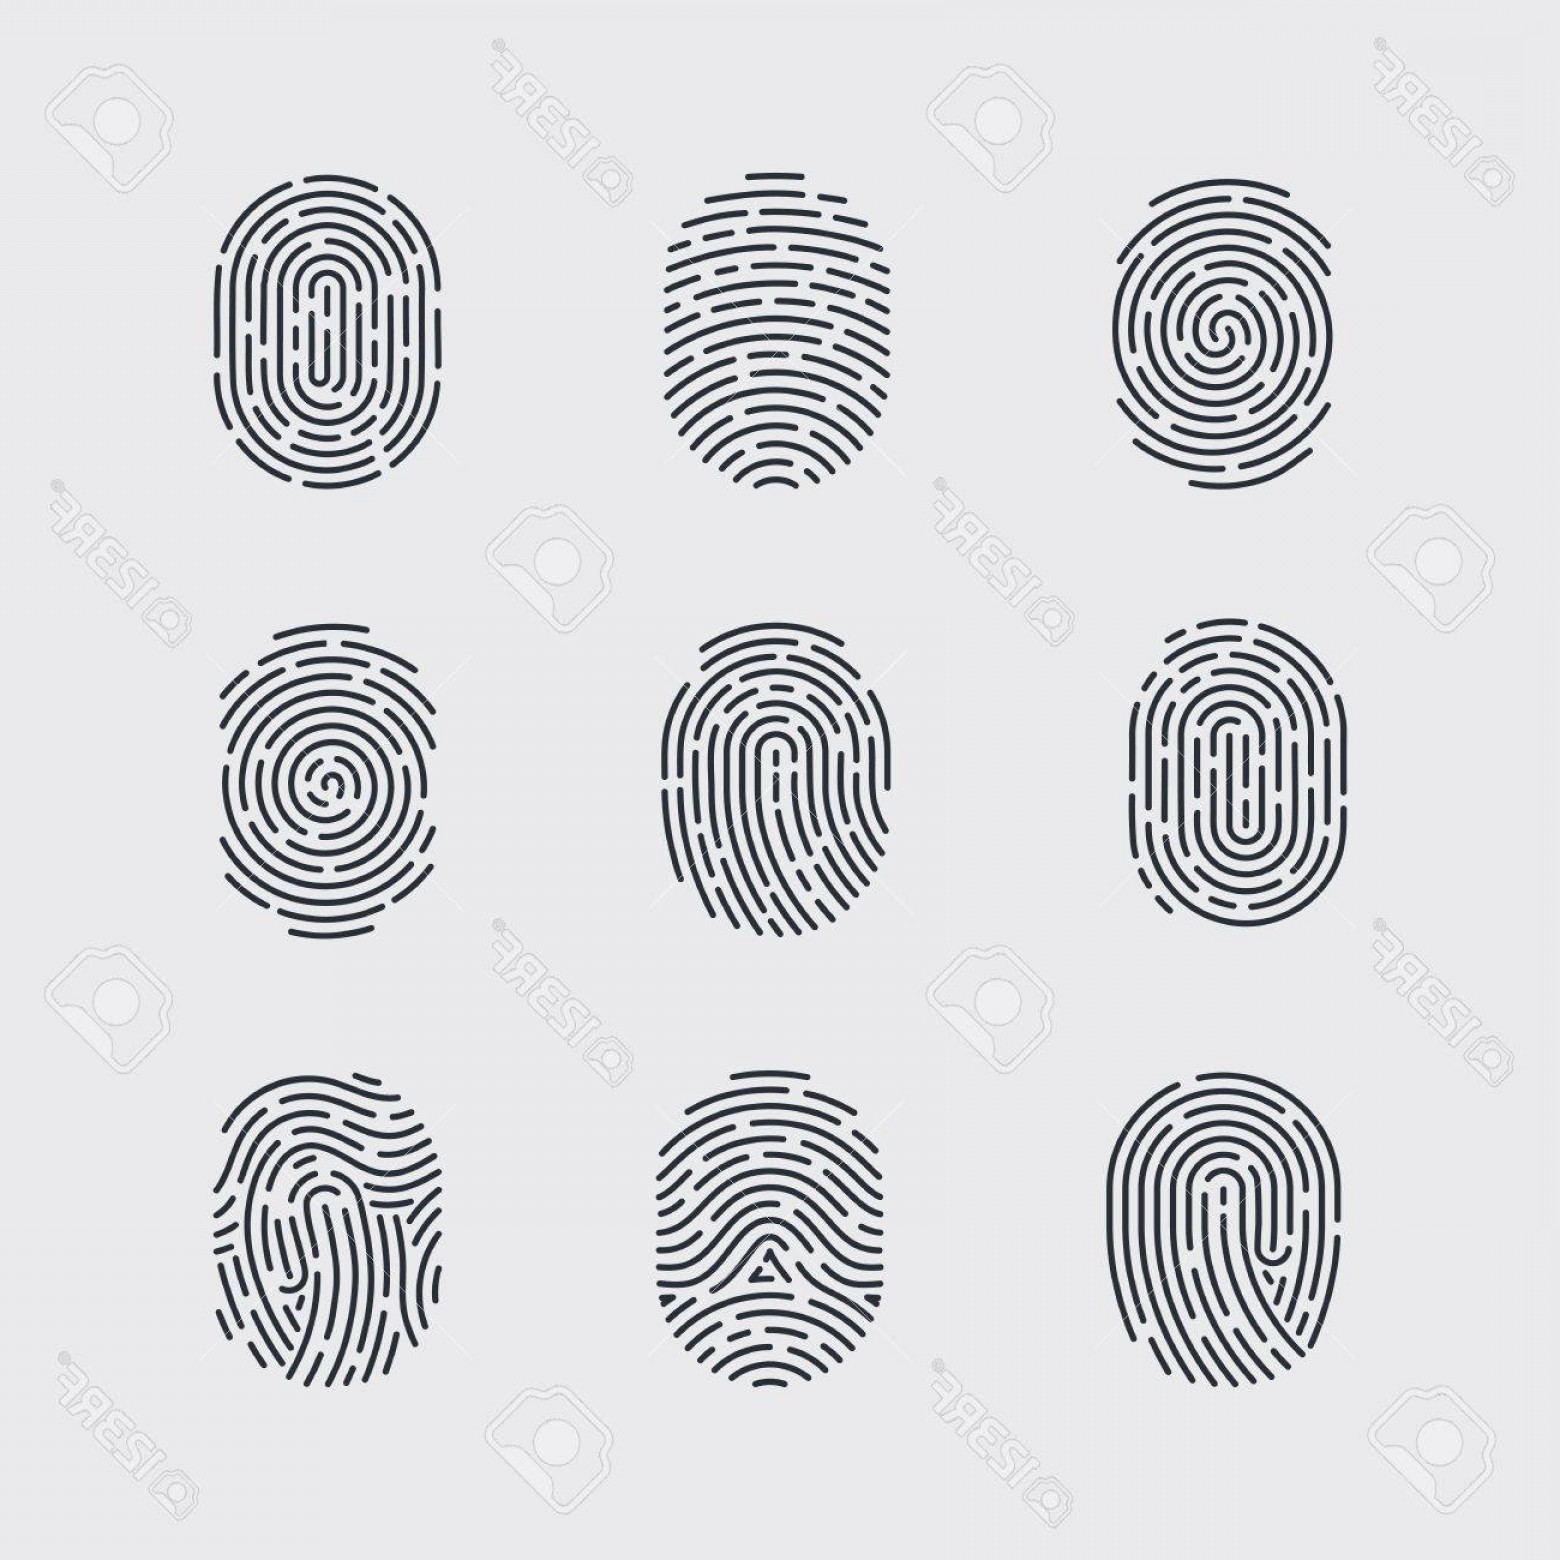 Security Vector Patterns: Photostock Vector Types Of Fingerprint Patterns For Identity Person Security Id On Gray Background For Design